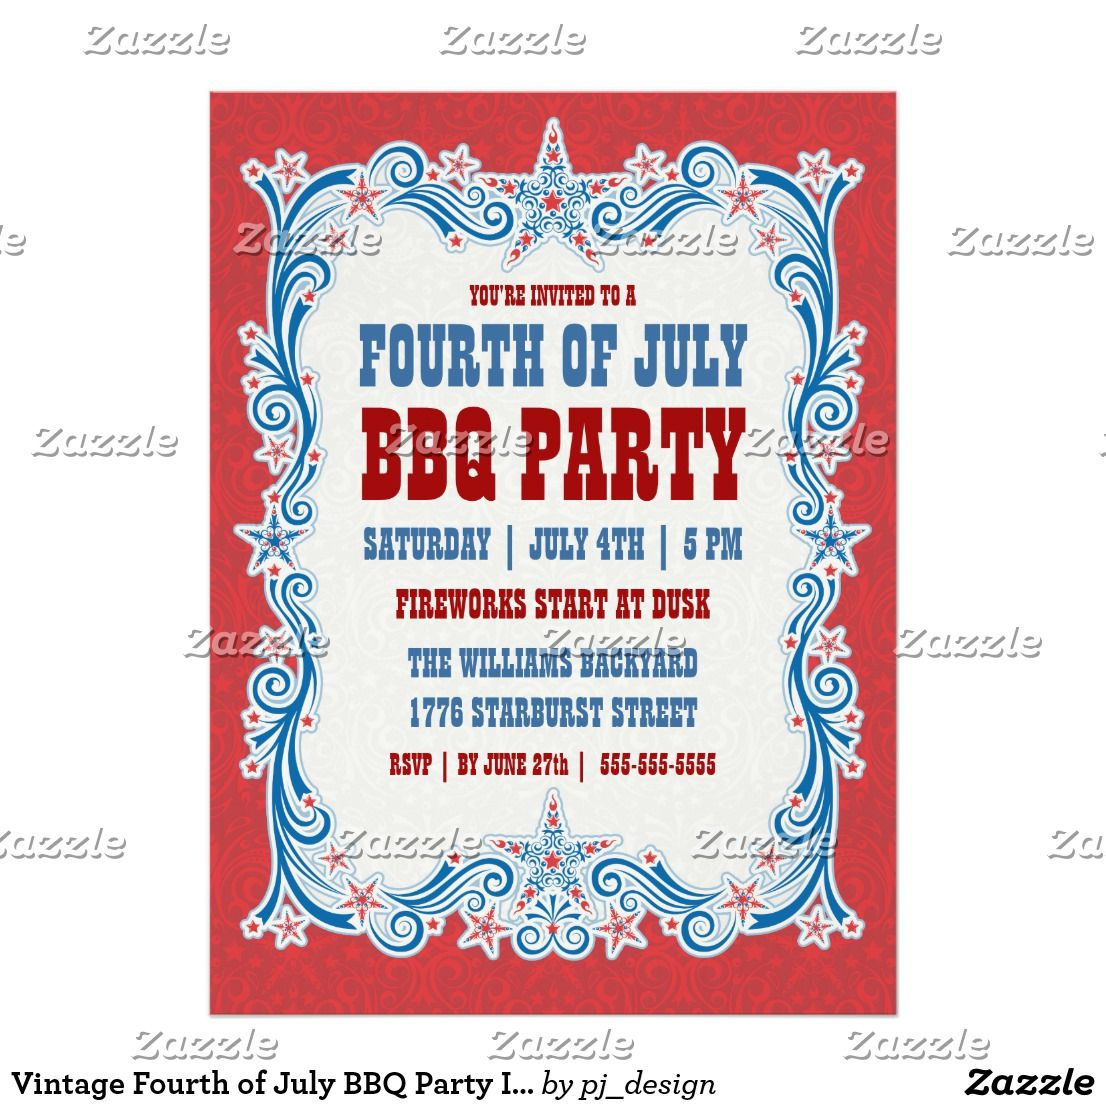 Vintage Fourth of July BBQ Party Invitation   Party invitations